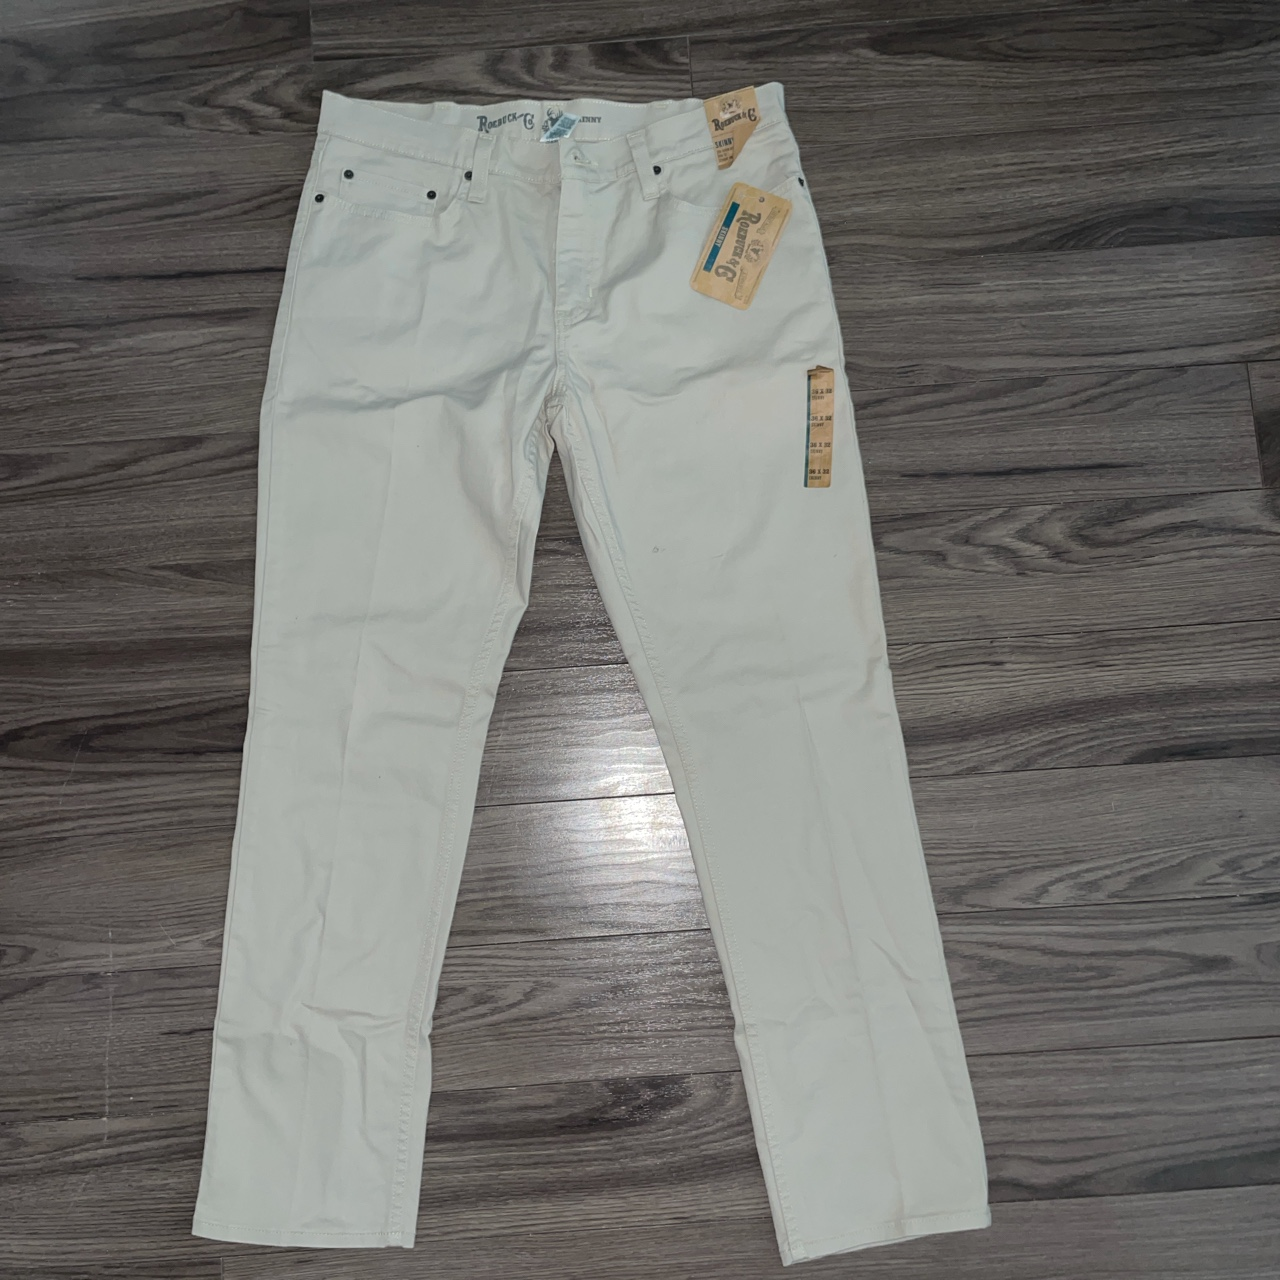 Product Image 1 - Straight Legs Jean     #jeans #demin